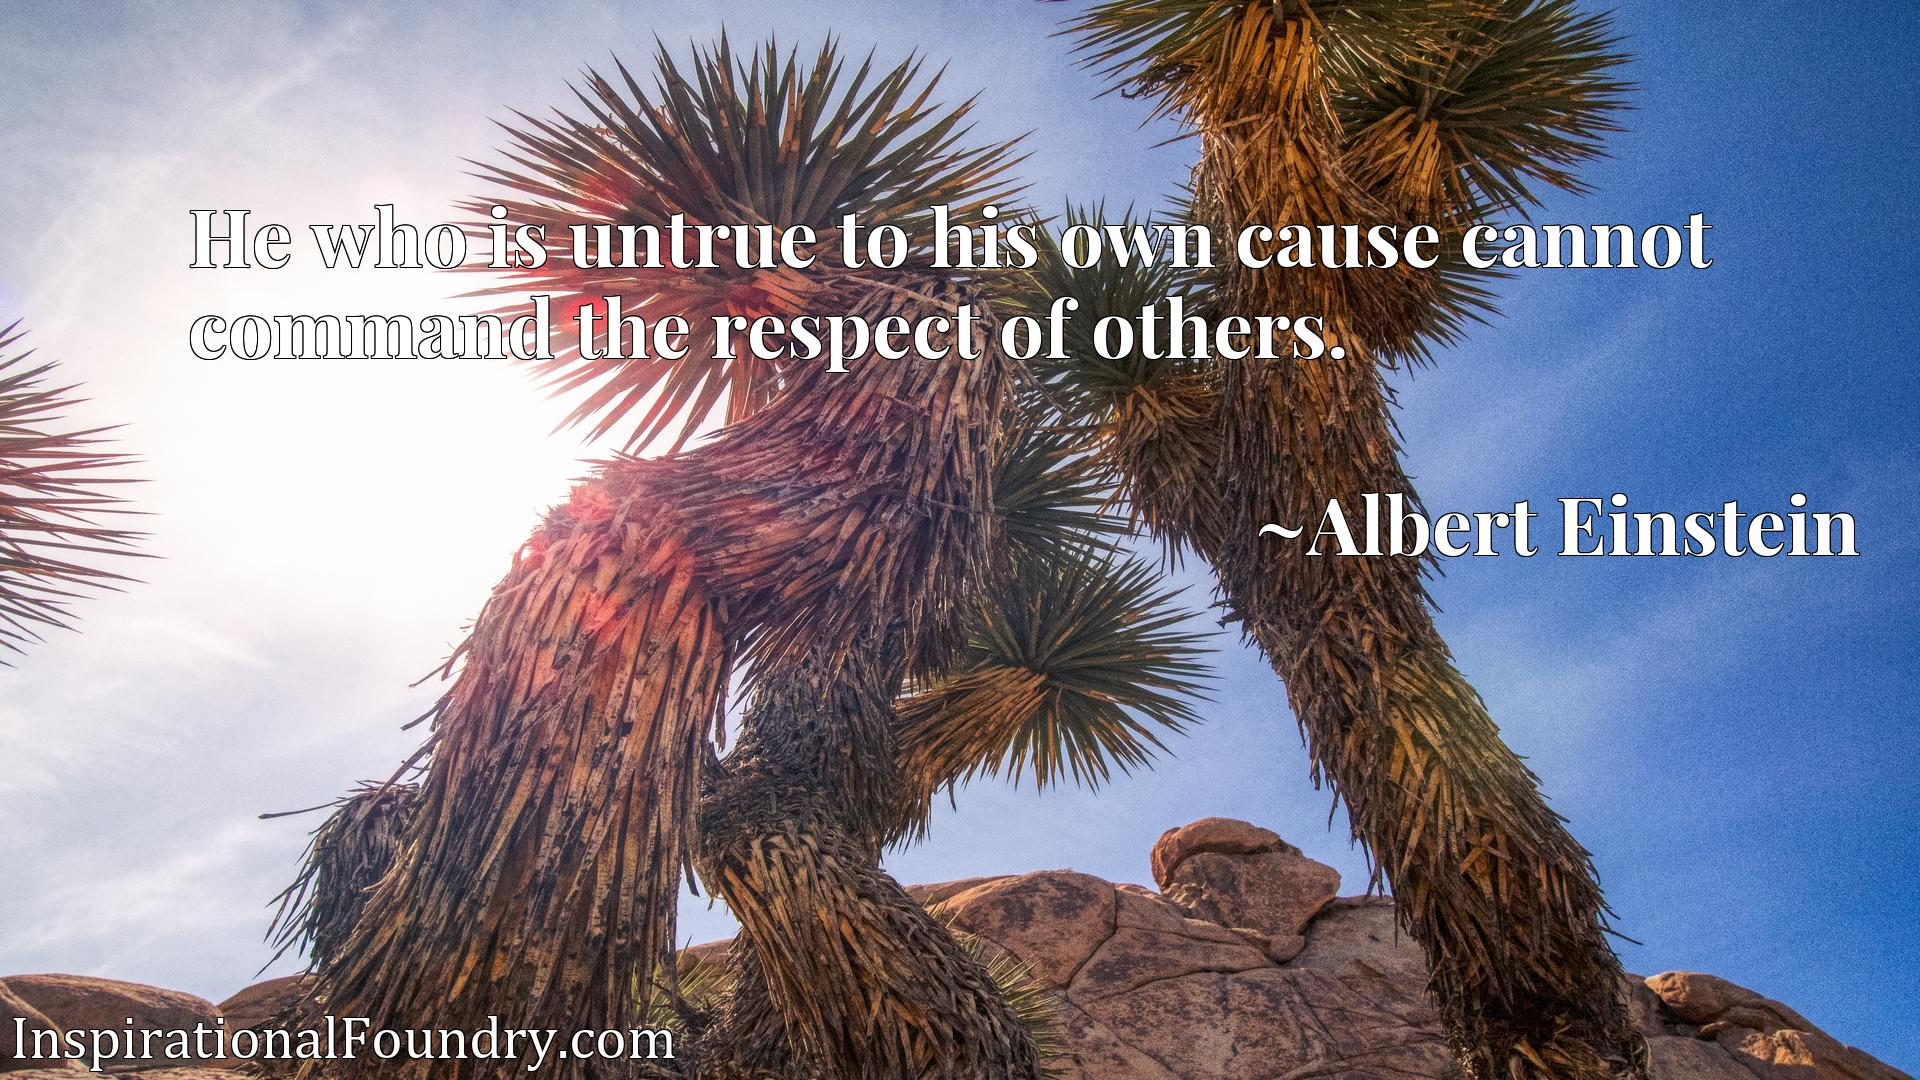 He who is untrue to his own cause cannot command the respect of others.